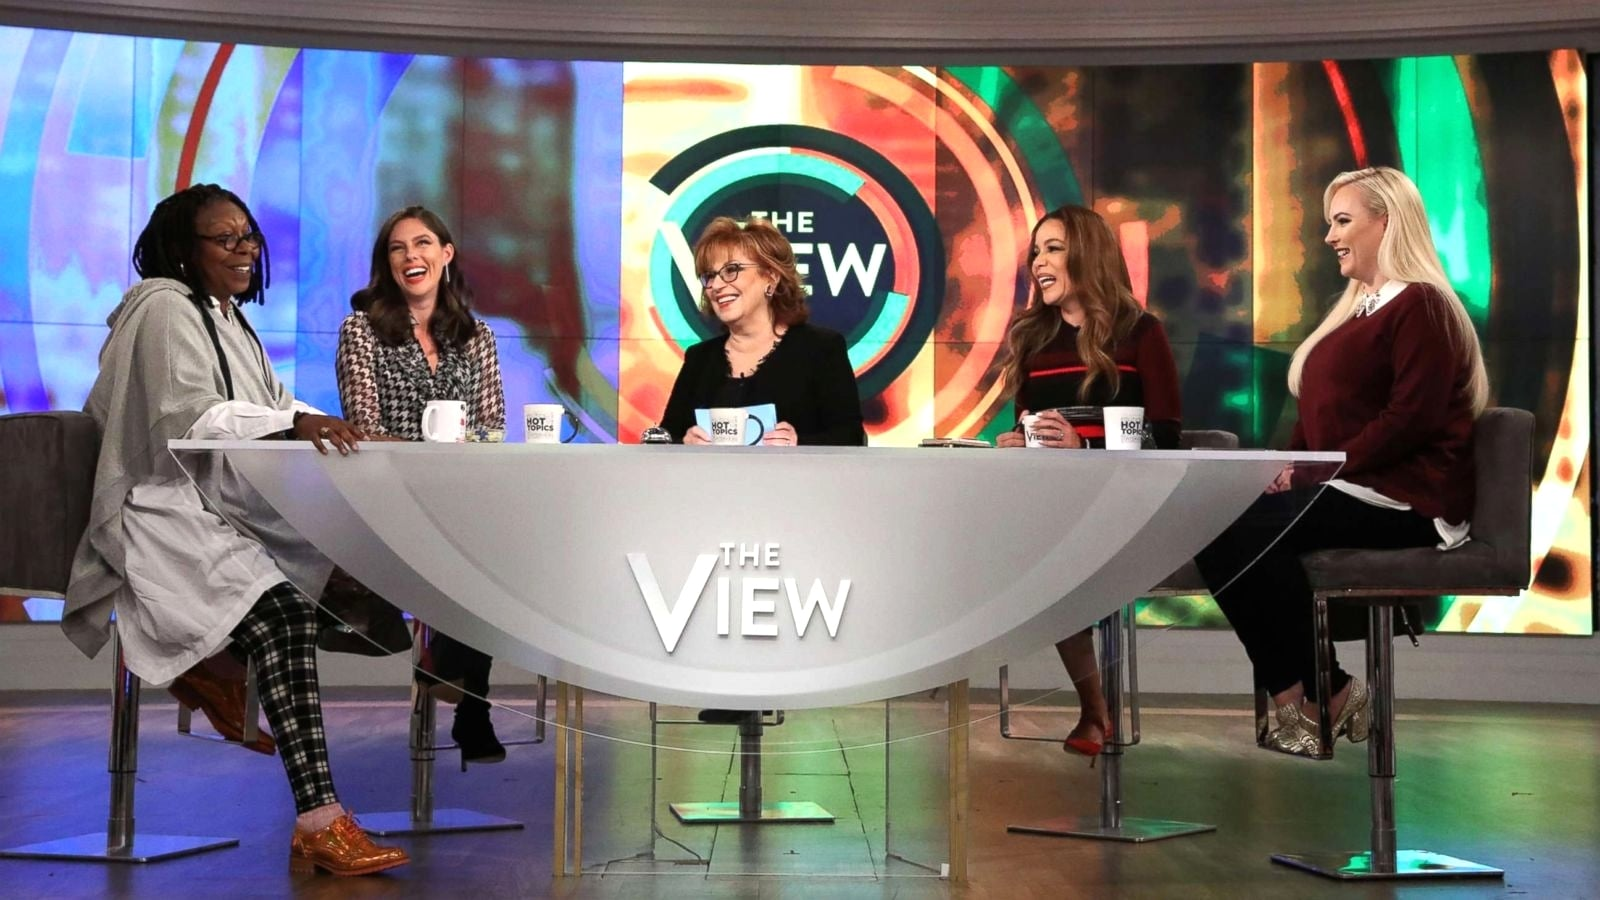 The View - Season 3 Episode 205 : Season 3, Episode 205